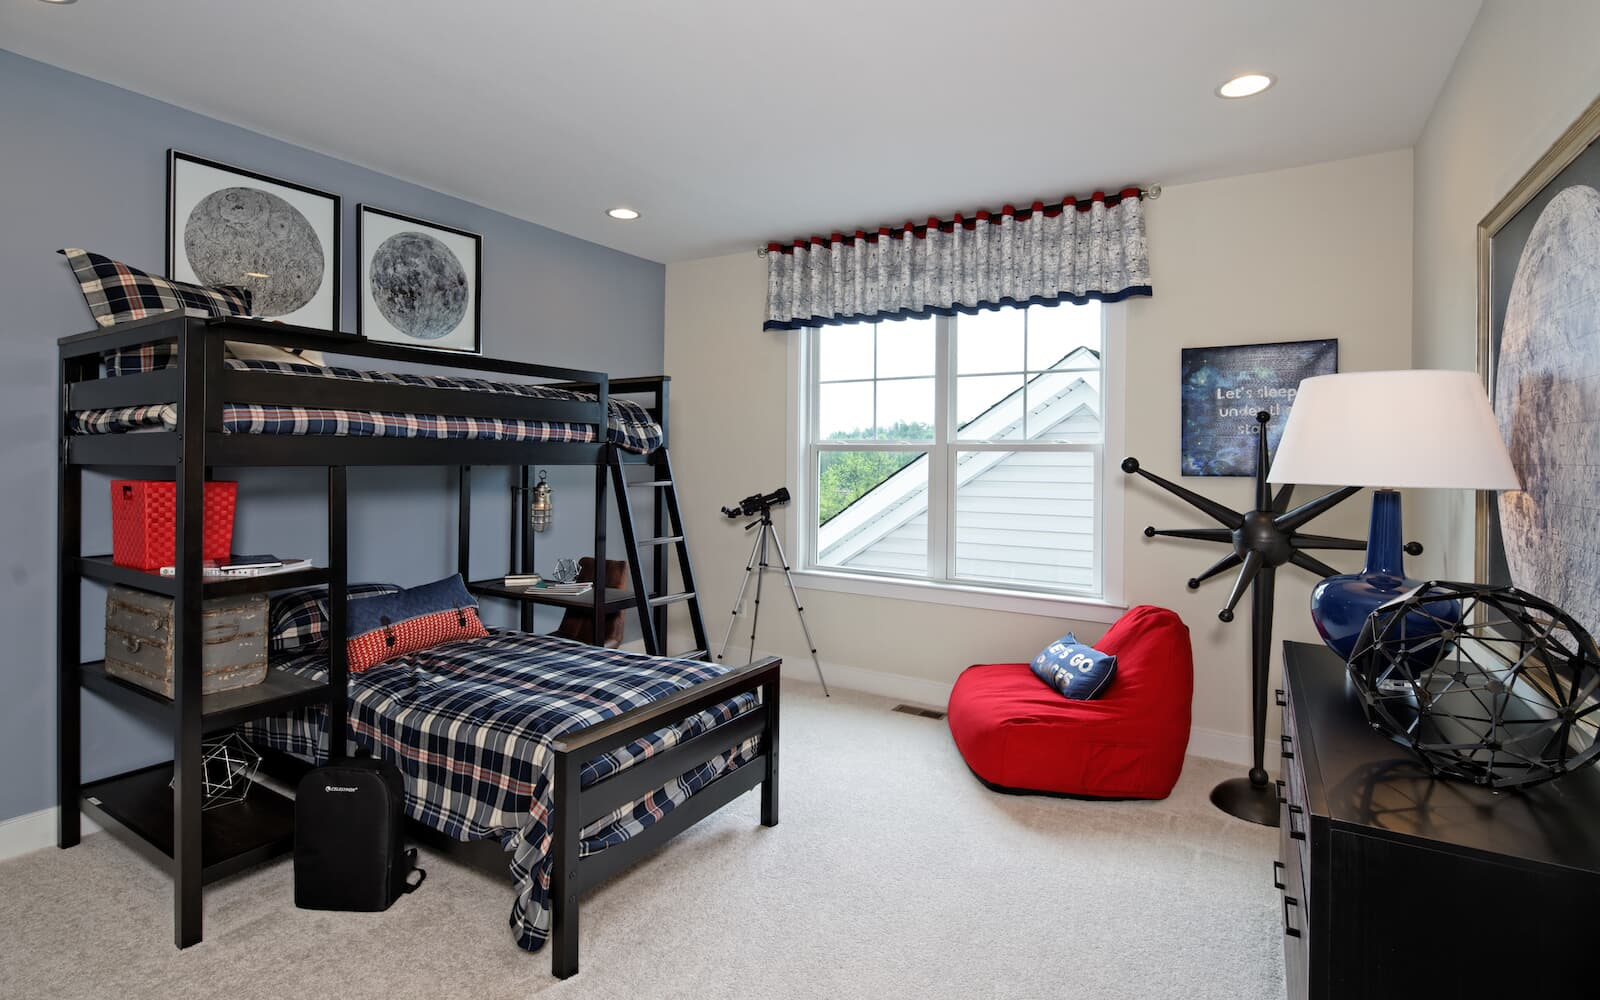 Cresswell-bedroom3-single-family-homes-leesburg-va-waterford-manor-brookfield-residential